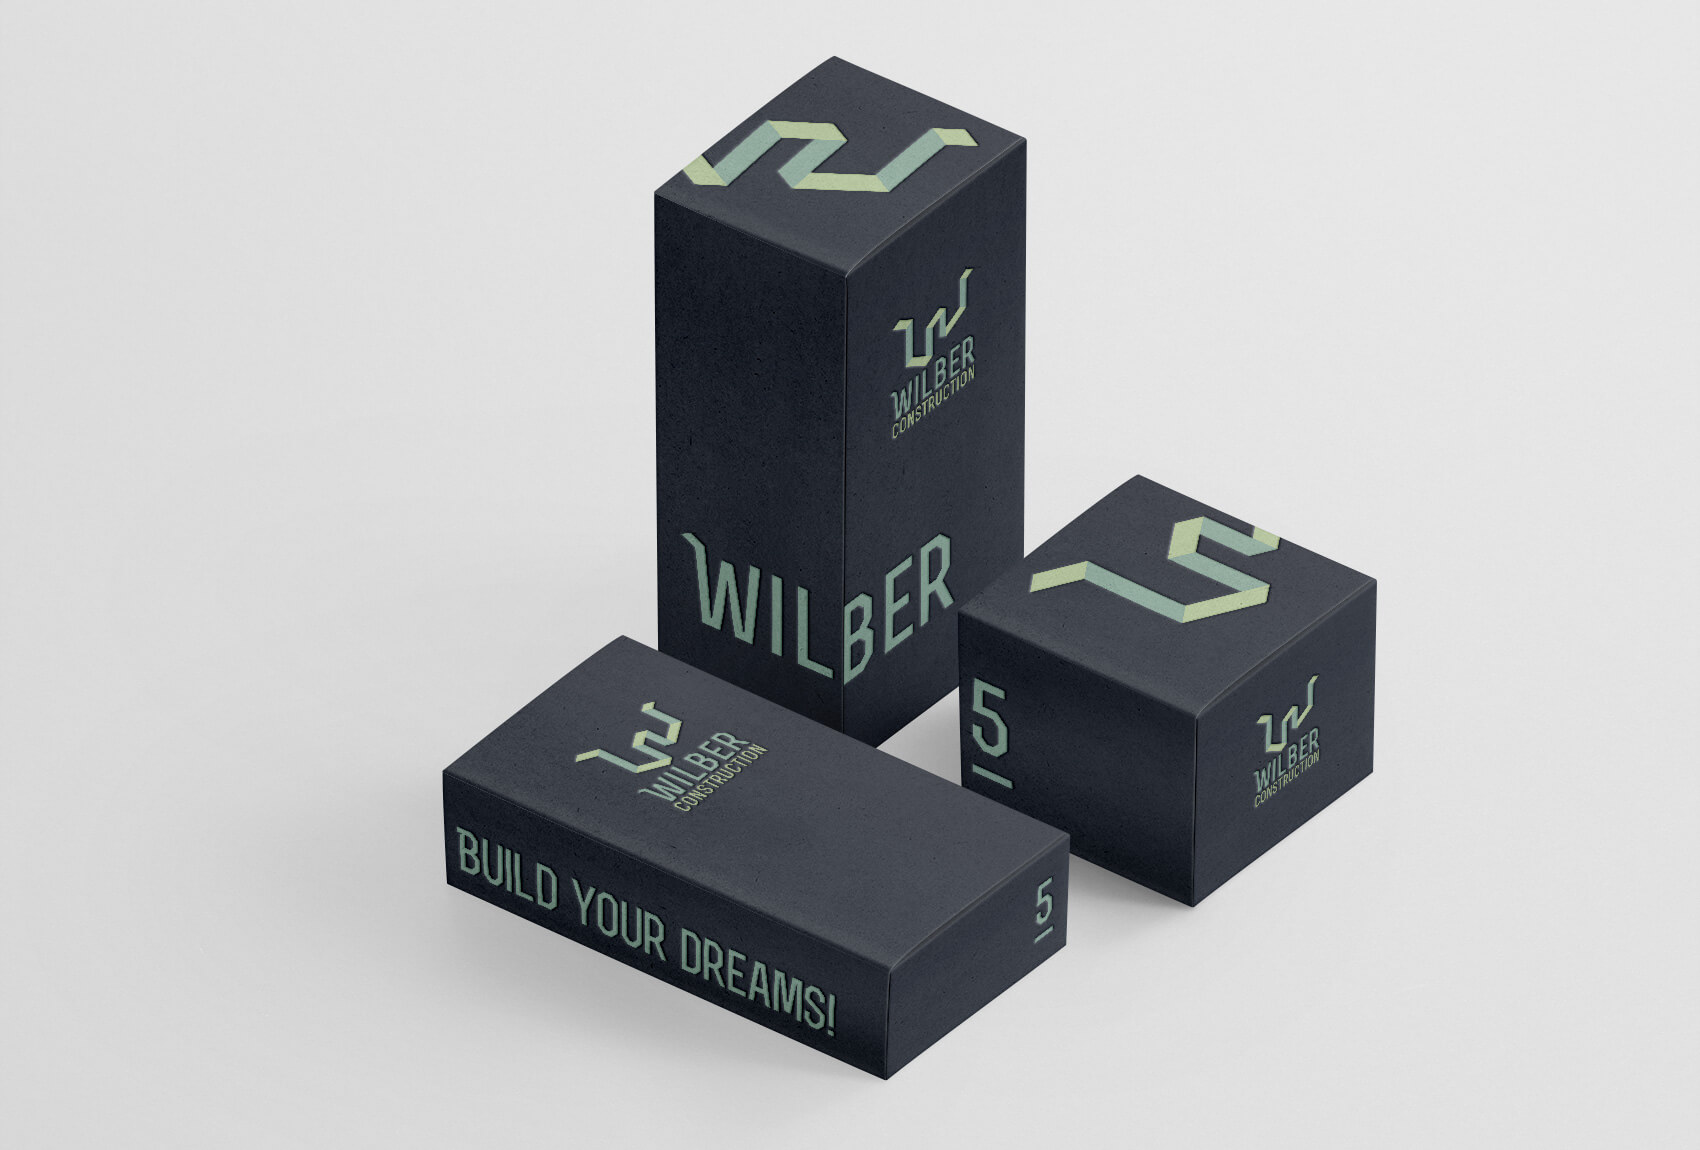 wilber-packaging